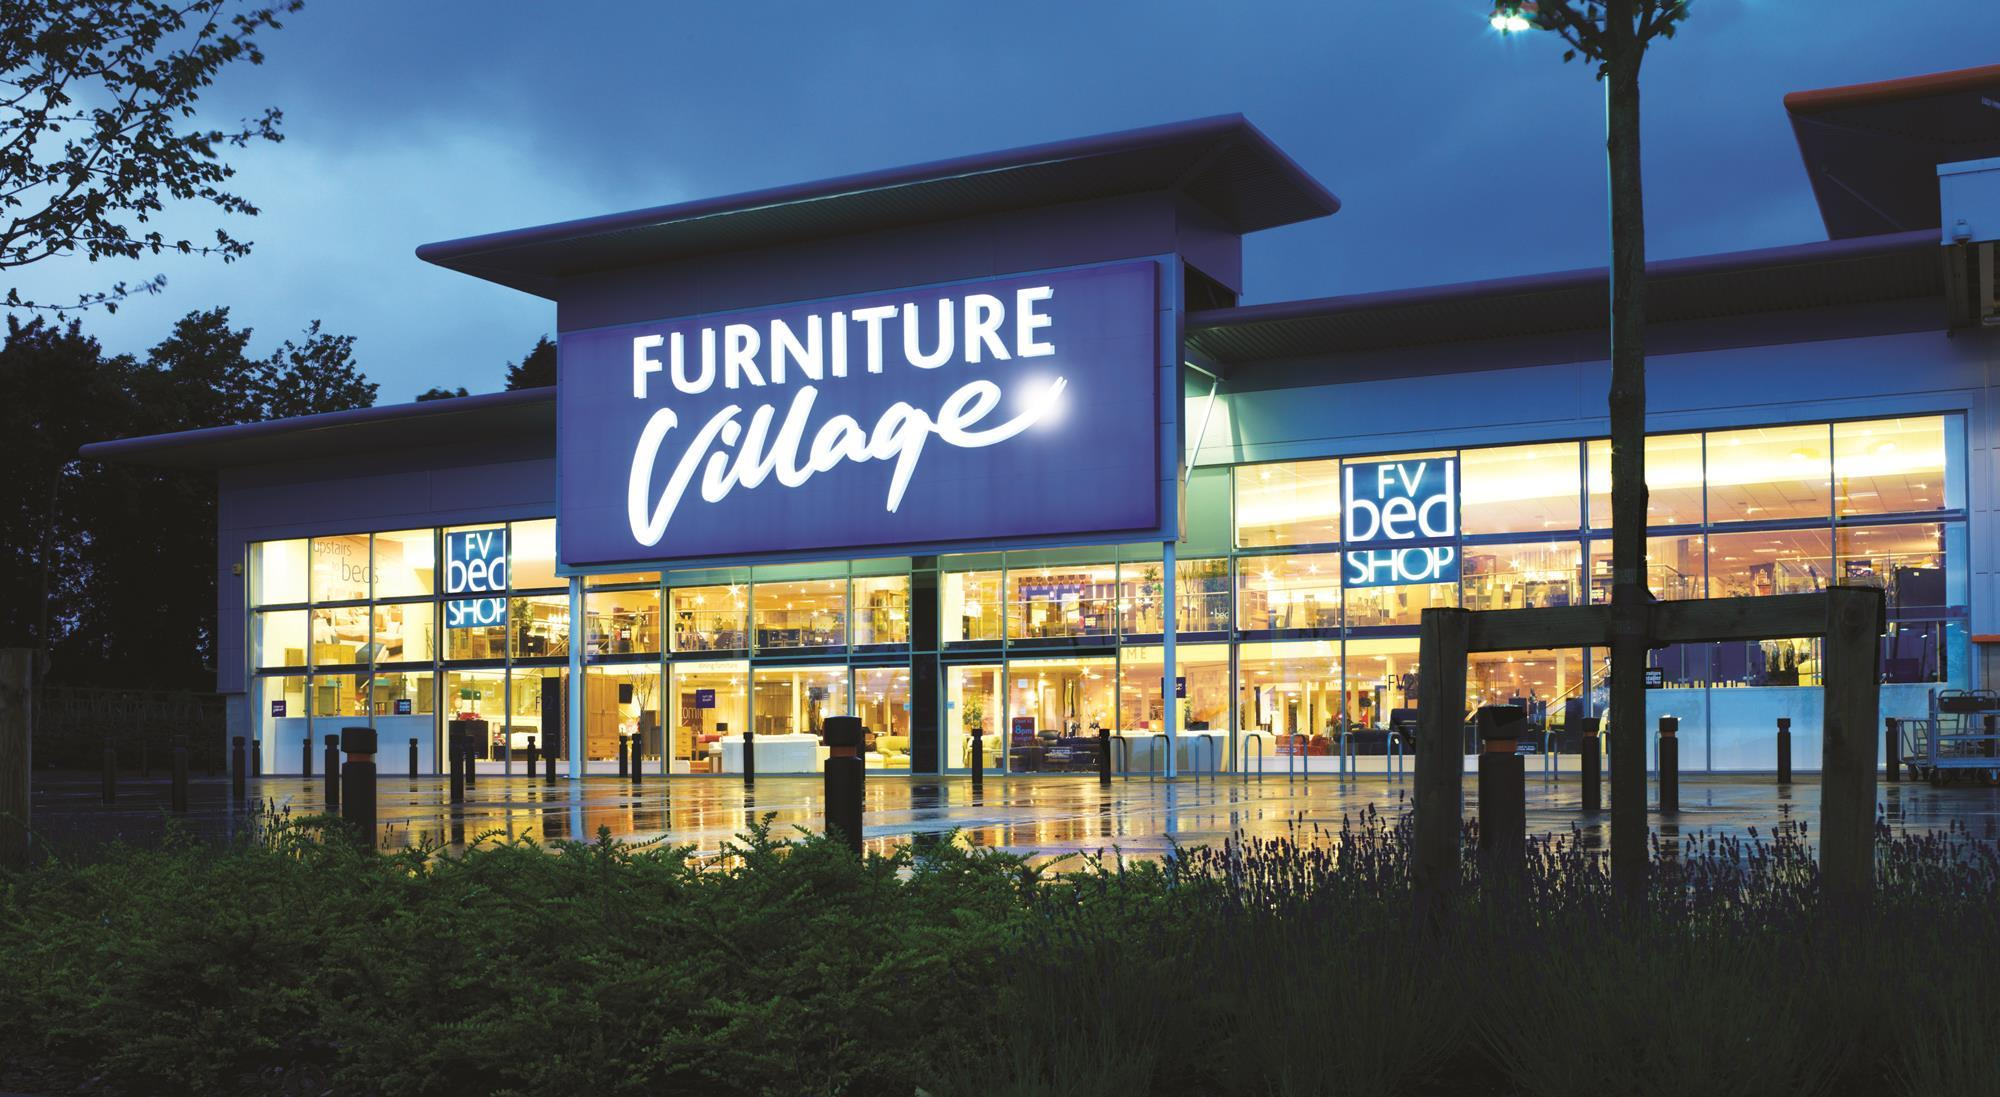 Furniture Village Advert 2015 furniture village furniture village | linkedin glamorous